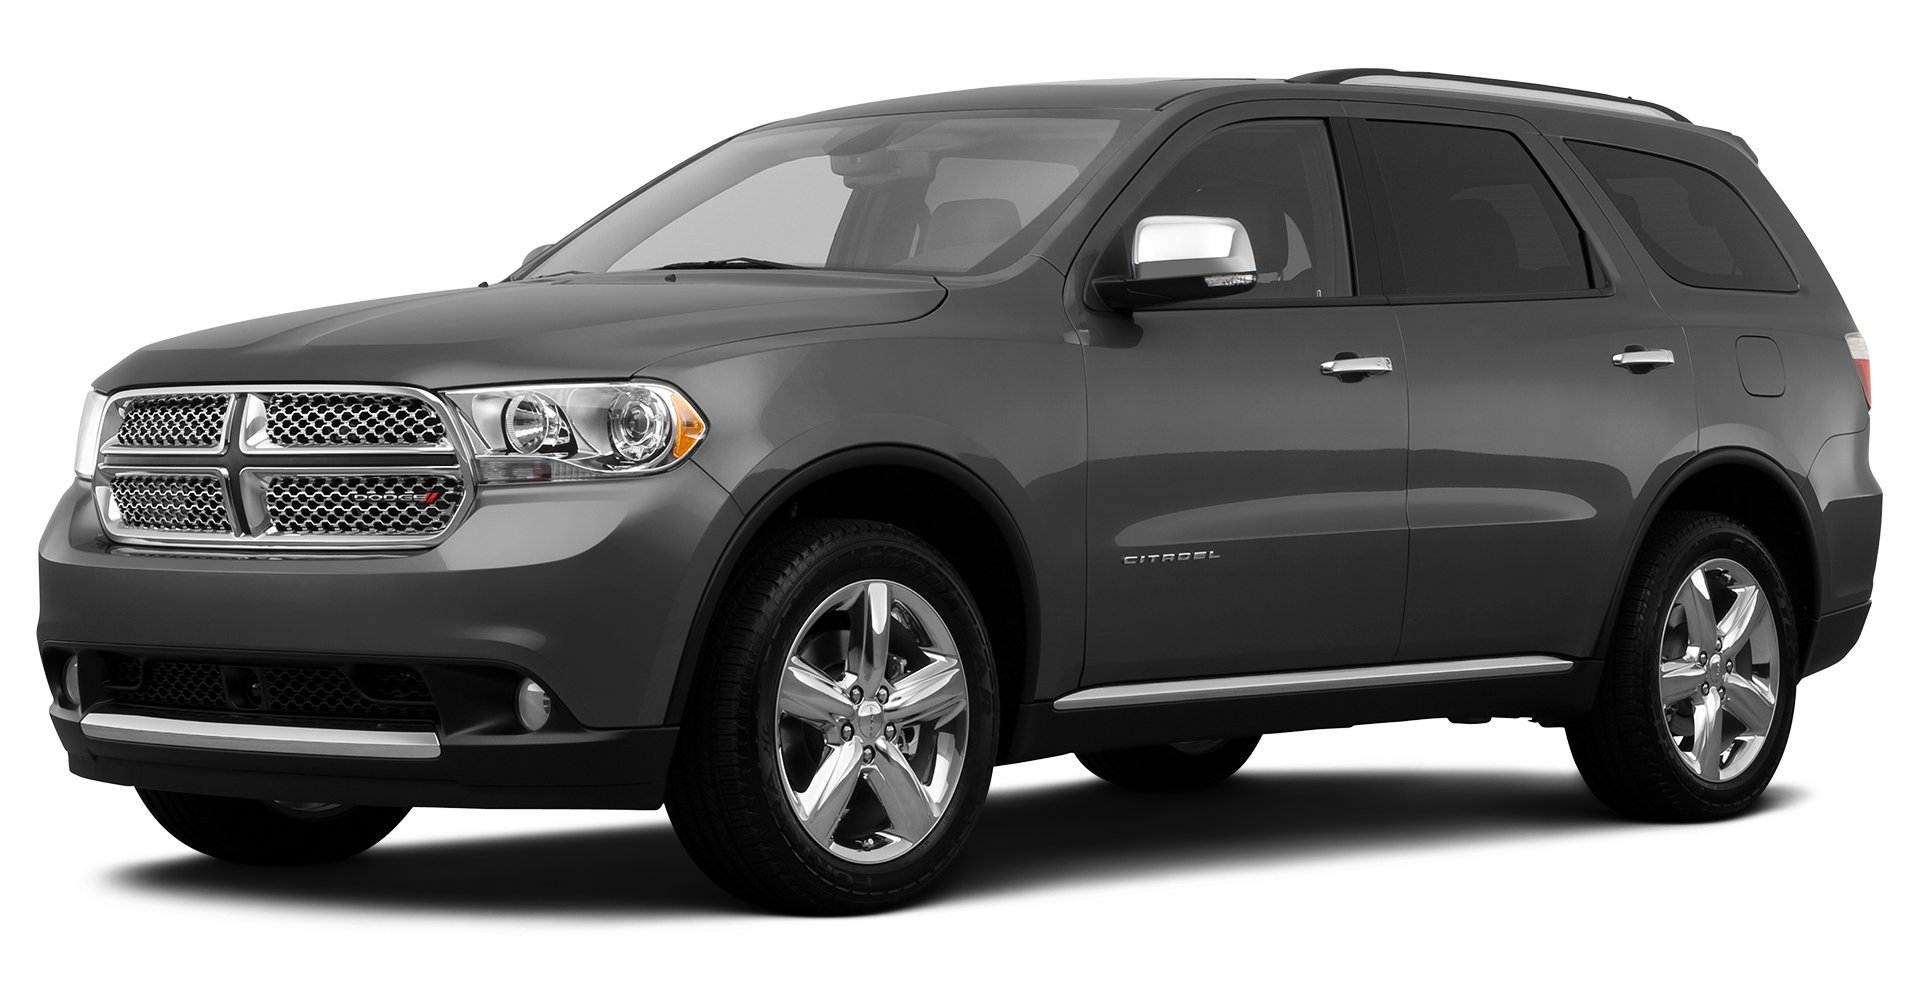 2013 dodge durango reviews images and specs. Black Bedroom Furniture Sets. Home Design Ideas